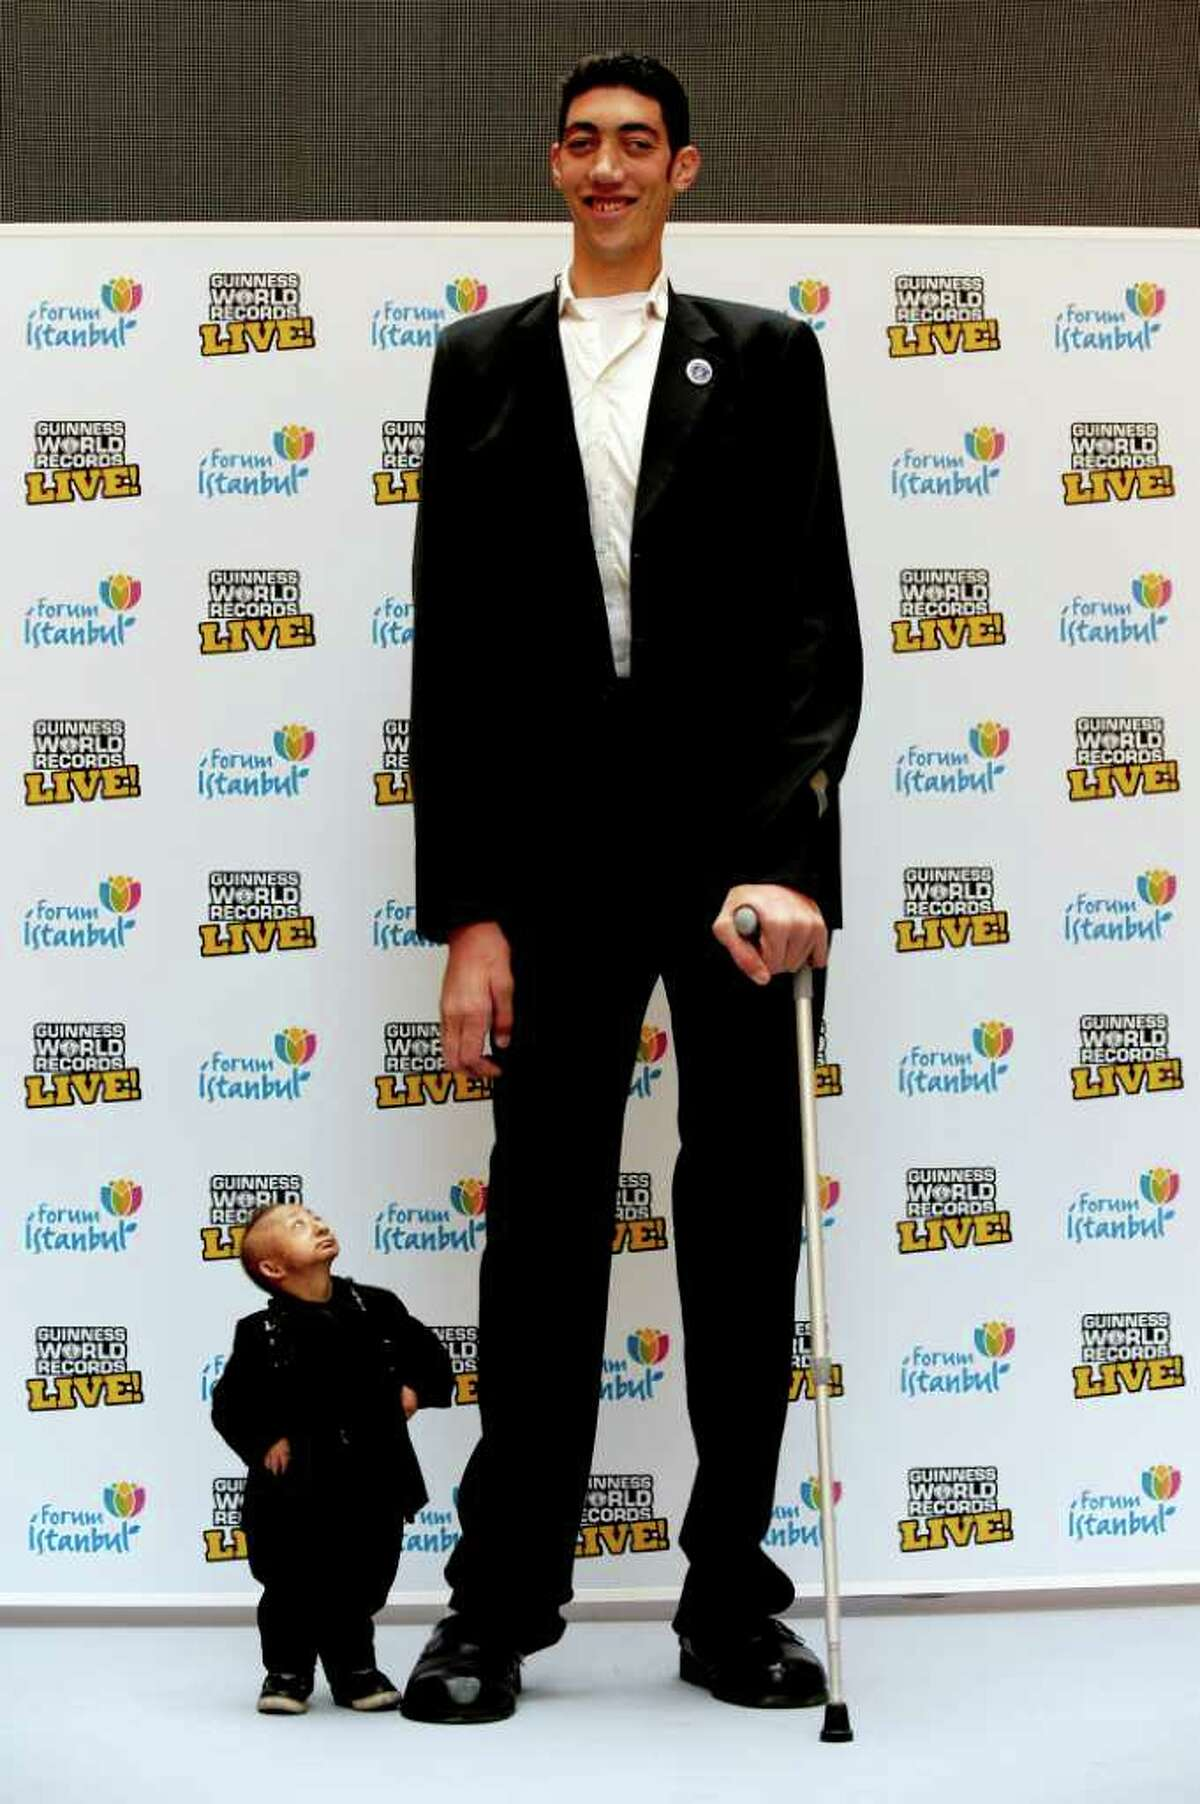 The world's tallest man, Sultan Kösen (R) standing at 8 ft 1 in (246.5 cm) poses with shortest man in the world He Pingping standing at 2 ft 5.37 in (74.61 cm) during celebrate the launch of the Guinness World Records live roadshow in Istanbul, on January 14, 2010. AFP PHOTO / MUSTAFA OZER